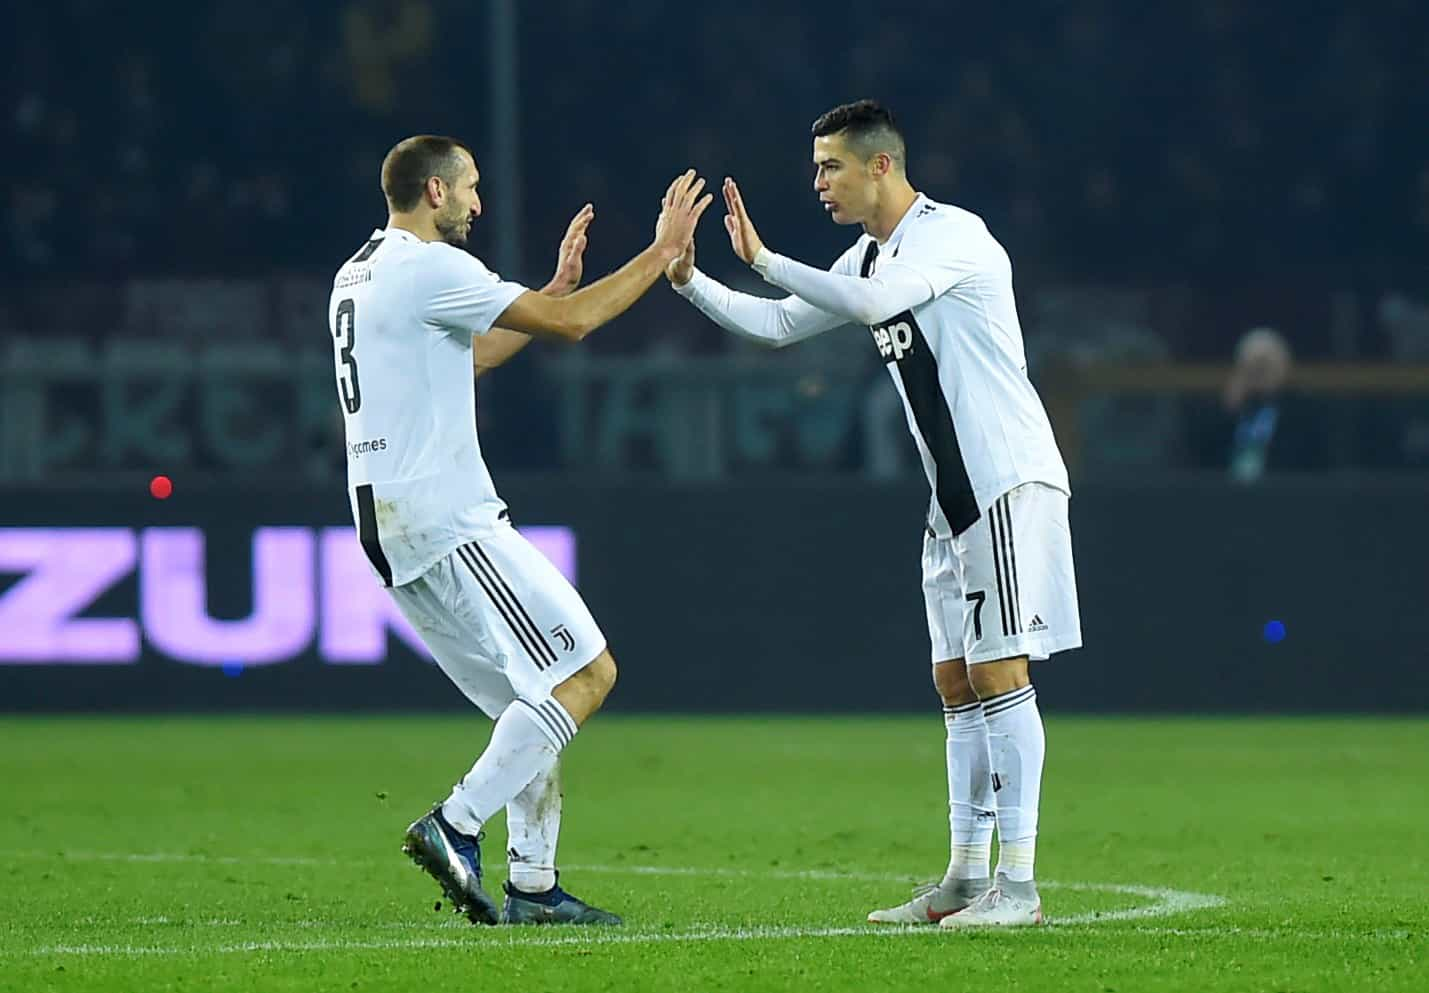 Chiellini comparou CR7 a duas figuras ímpares do desporto